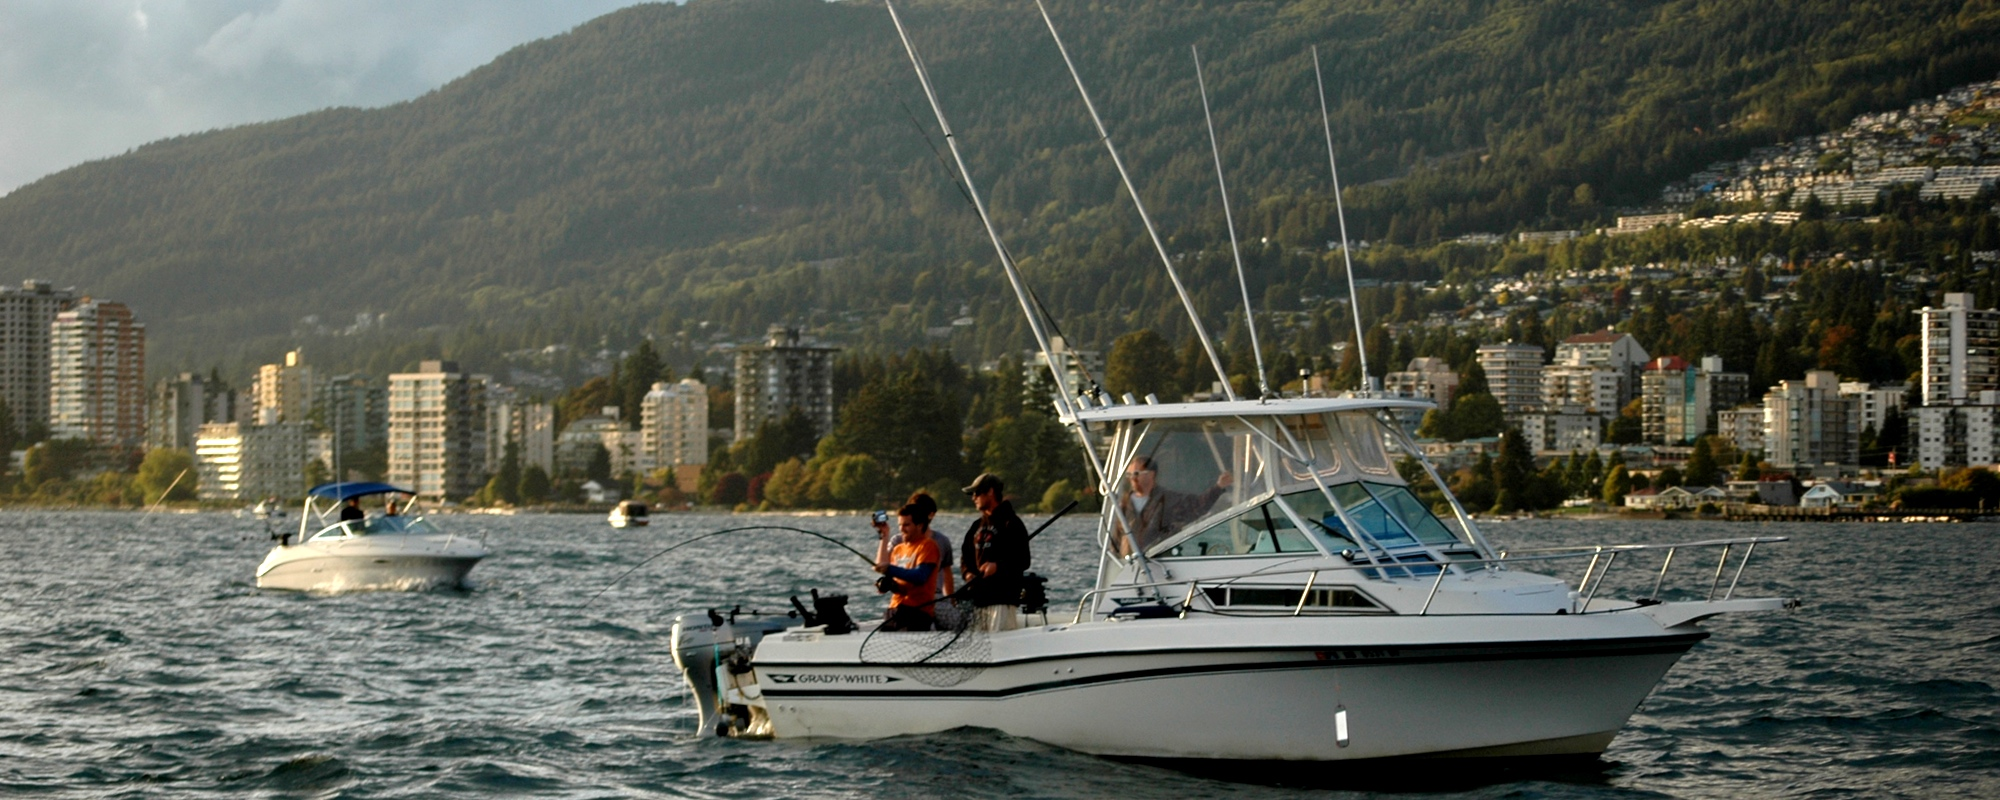 Salmon fishing charters in vancouver british columbia for Salmon fishing vancouver